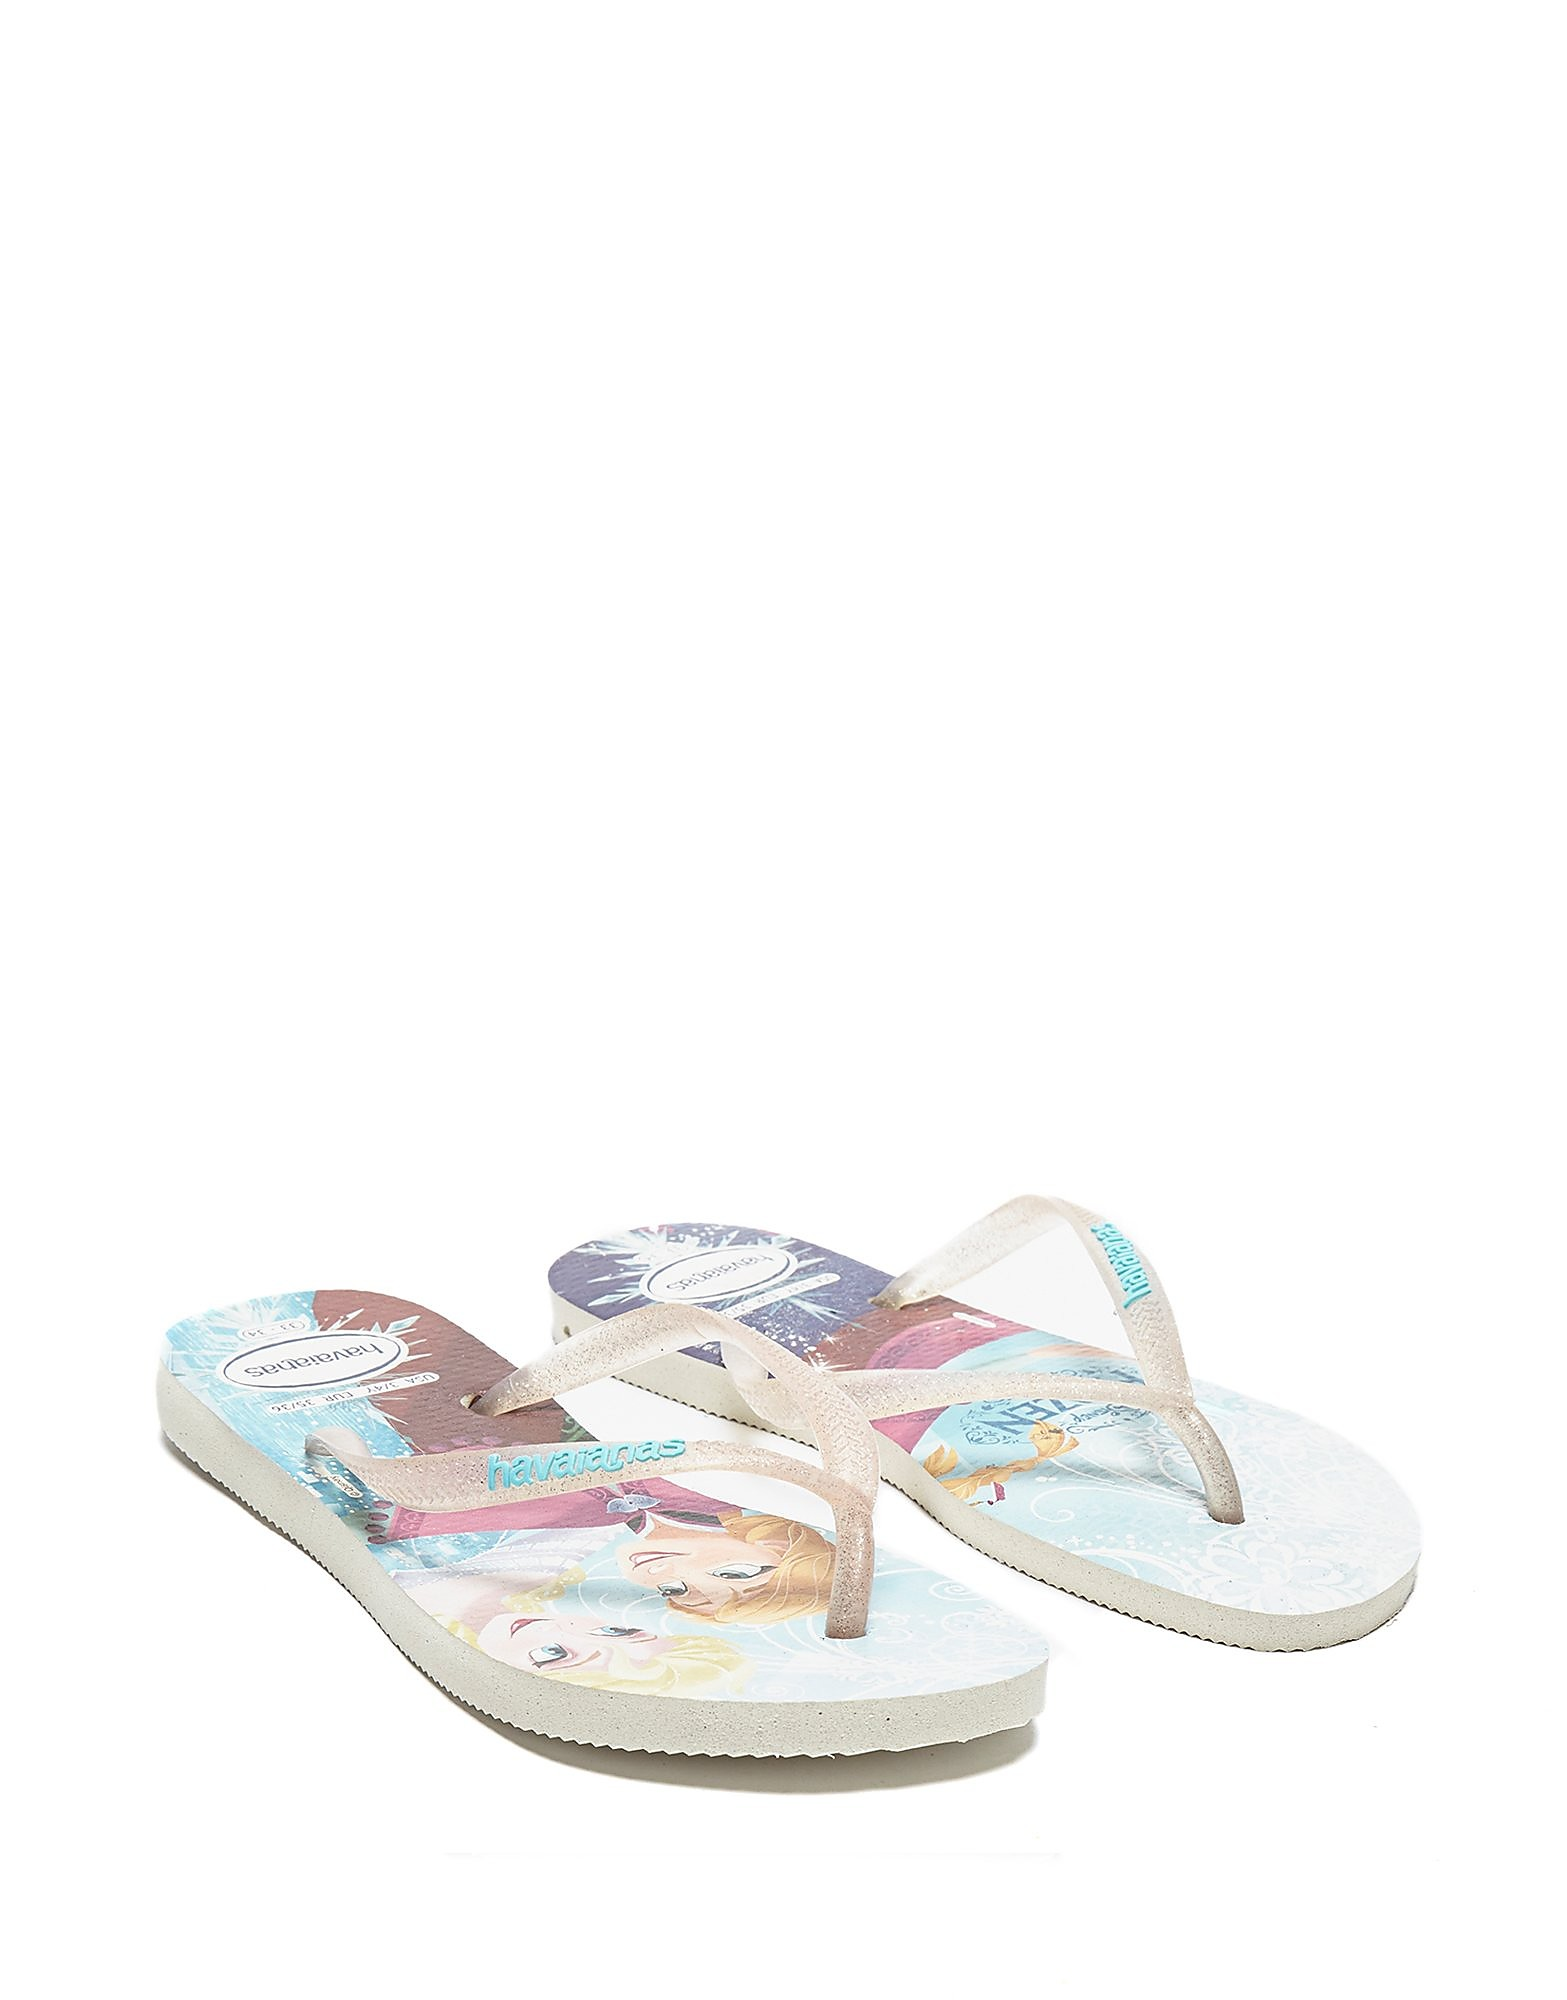 Havaianas Slim Princess Flip Flops Children